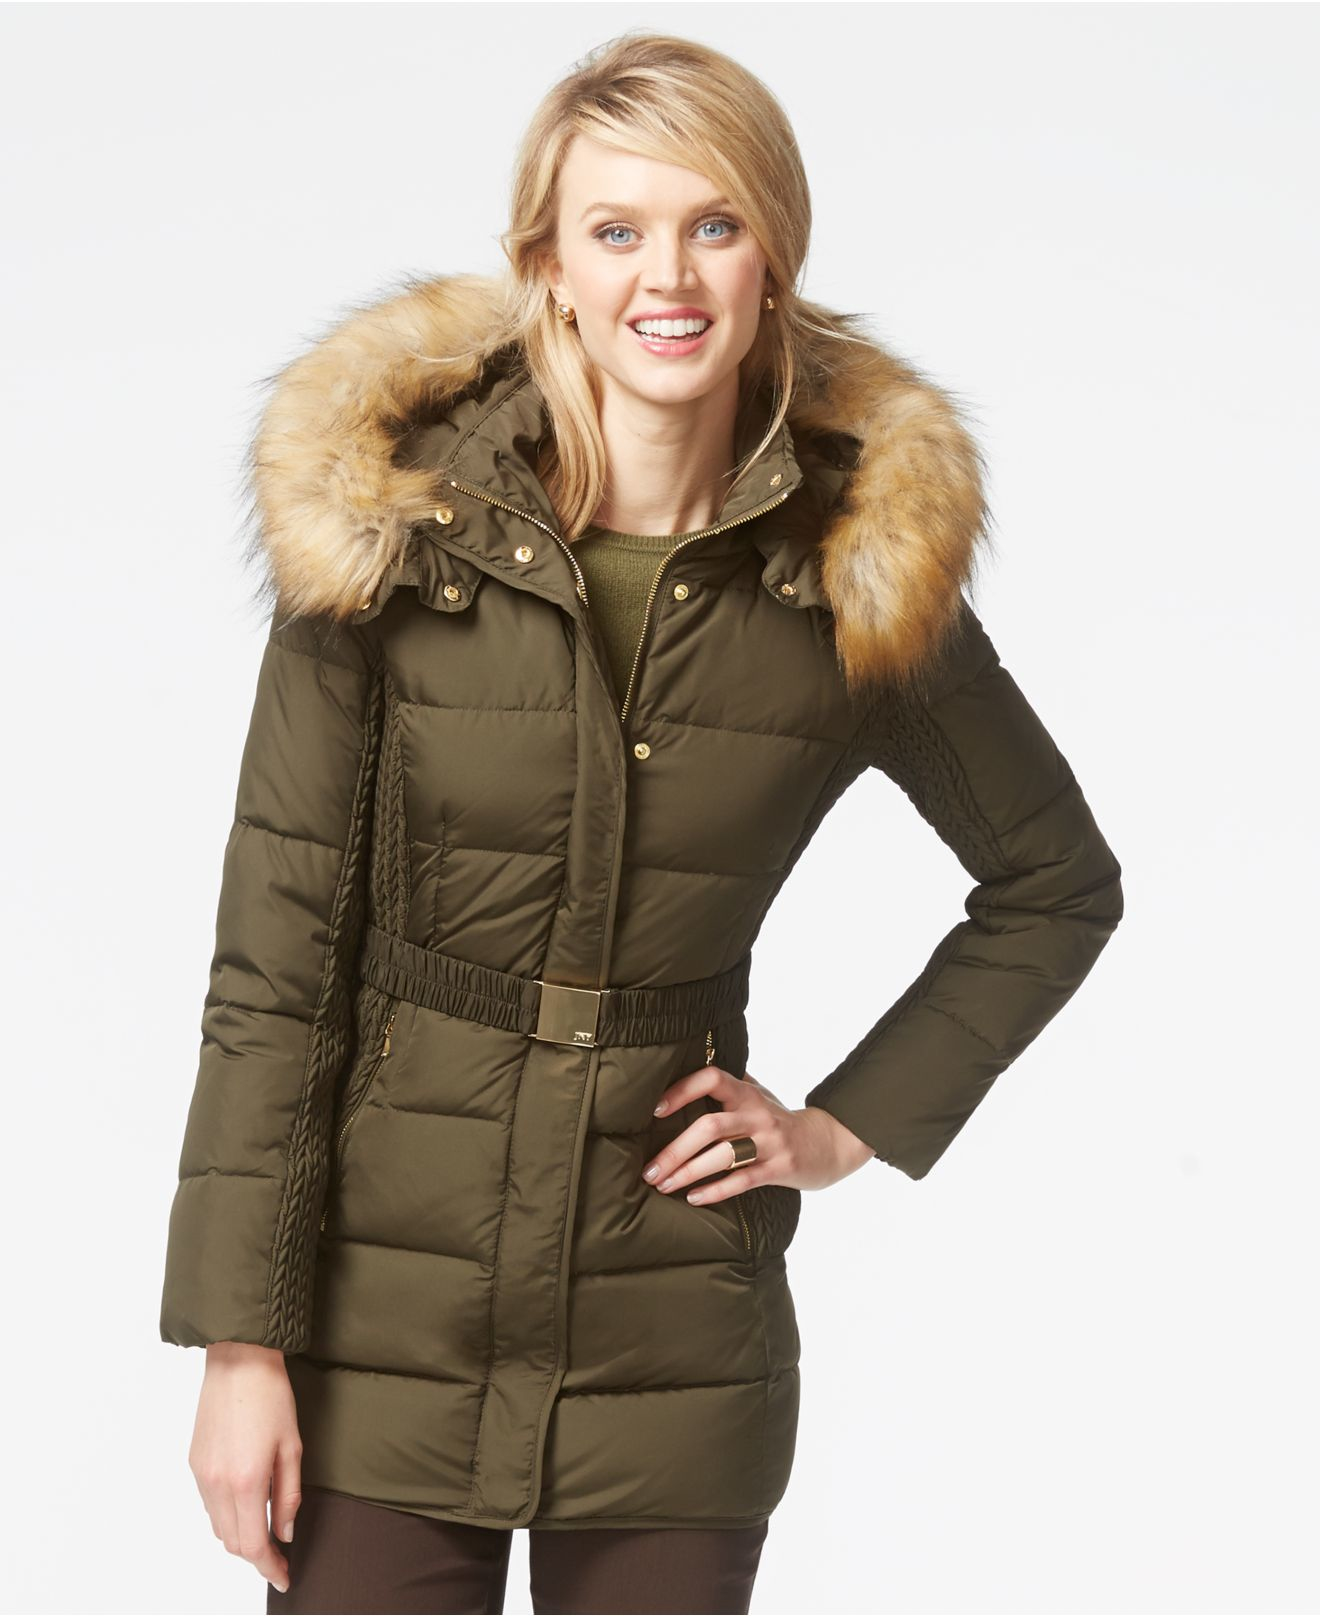 Jones New York Faux Fur Coats - Tradingbasis